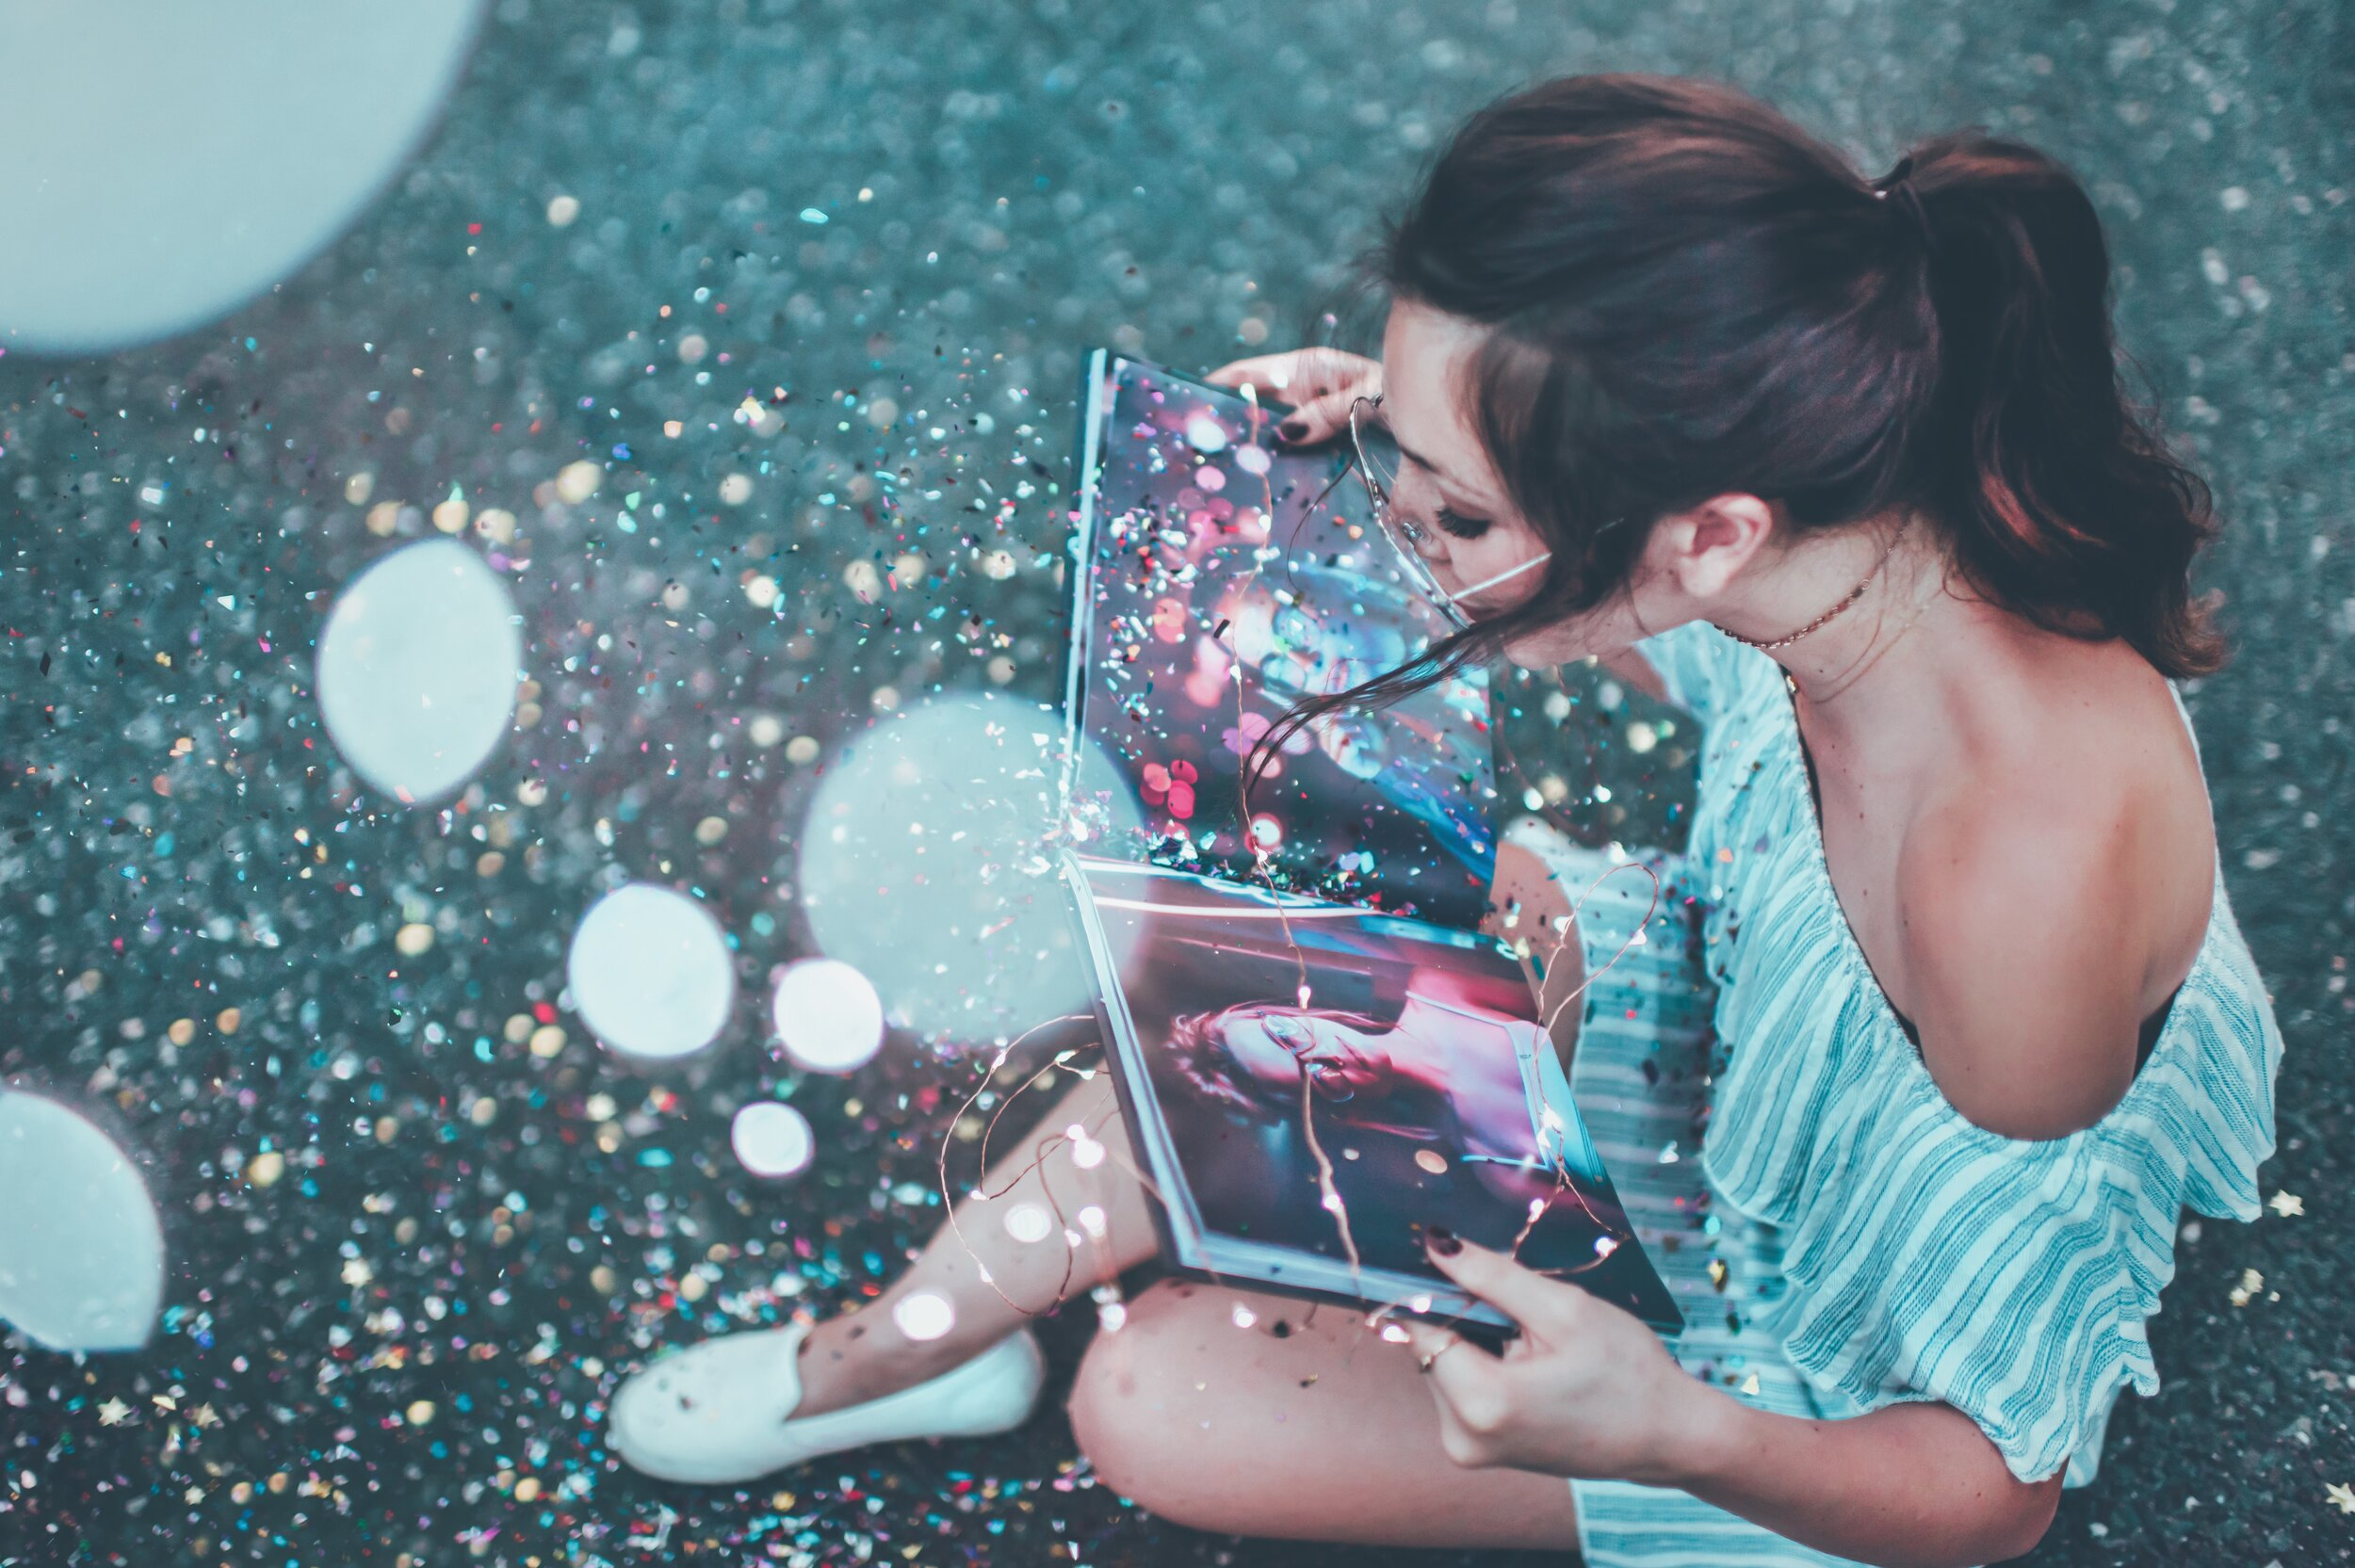 Restoring the Sparkle to Your Life and Relationships - Do you ever wonder why you have certain emotions and reactions that don't make sense and you can't talk yourself out of, no matter how hard you try?